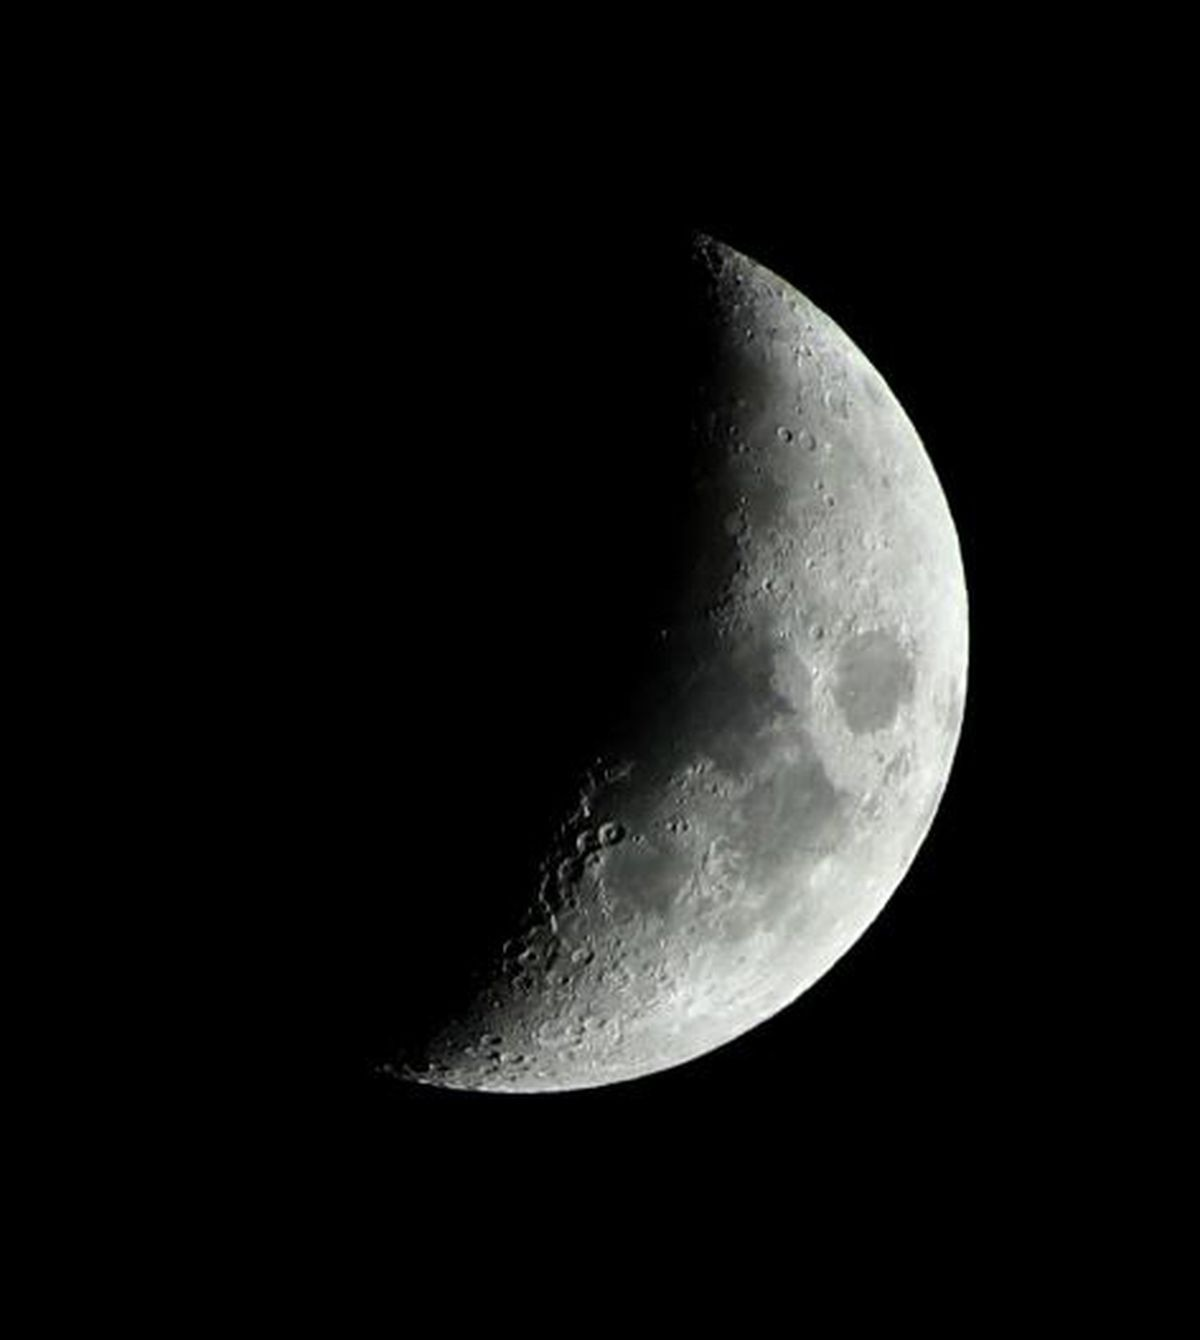 The Moon, pictured by Grant Privett of the Shropshire Astronomical Society.